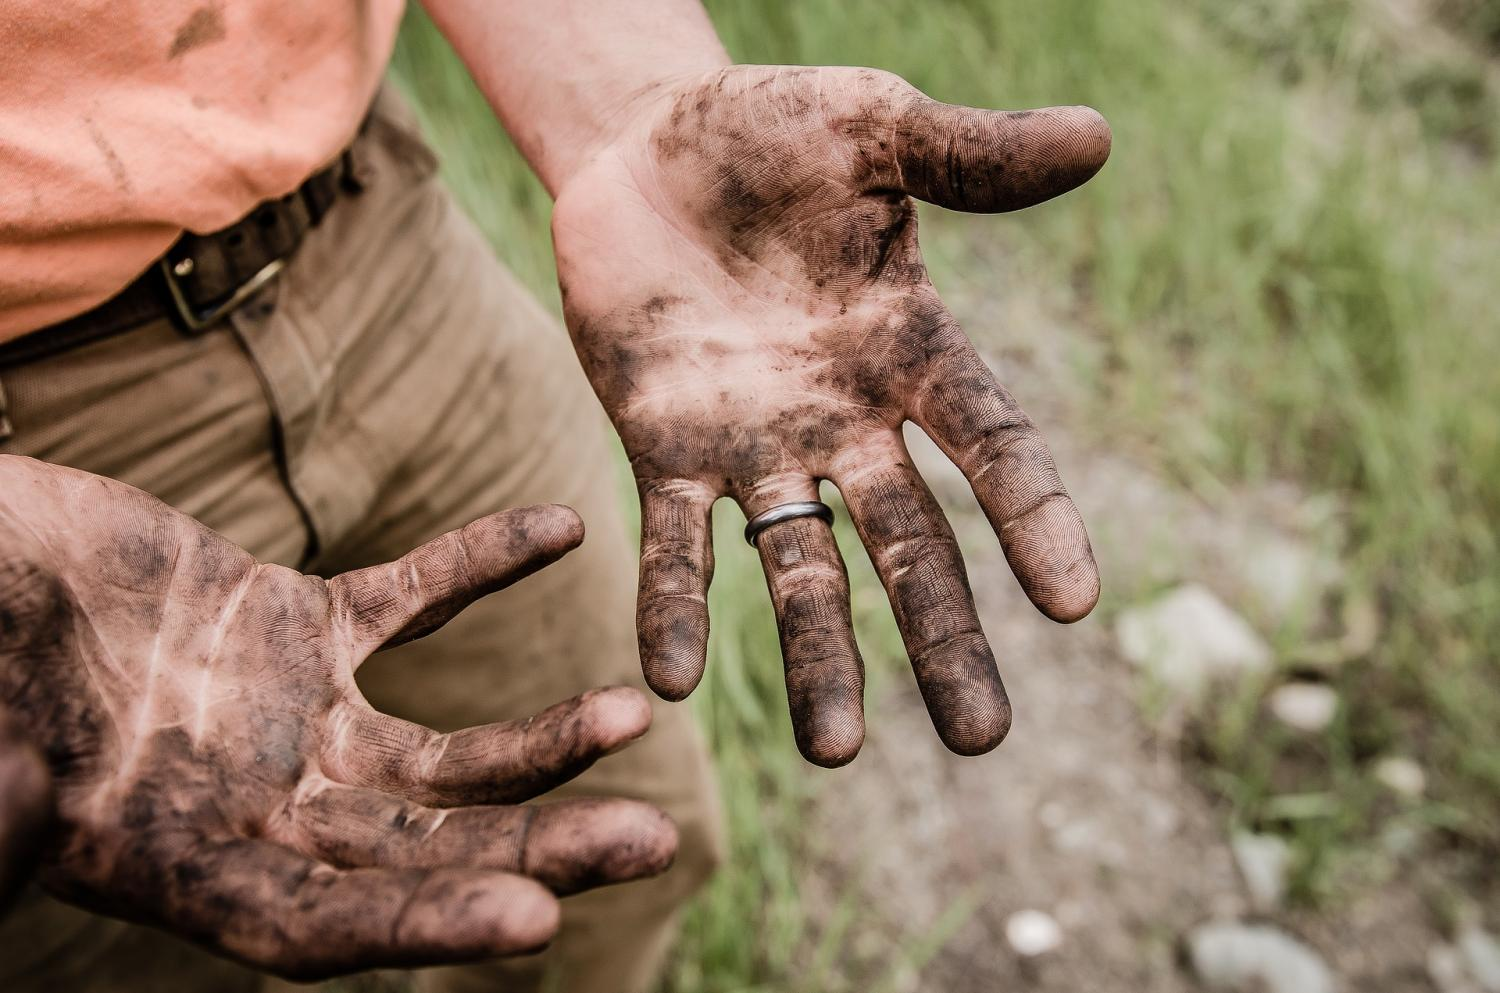 A man shows off his dirty hands.